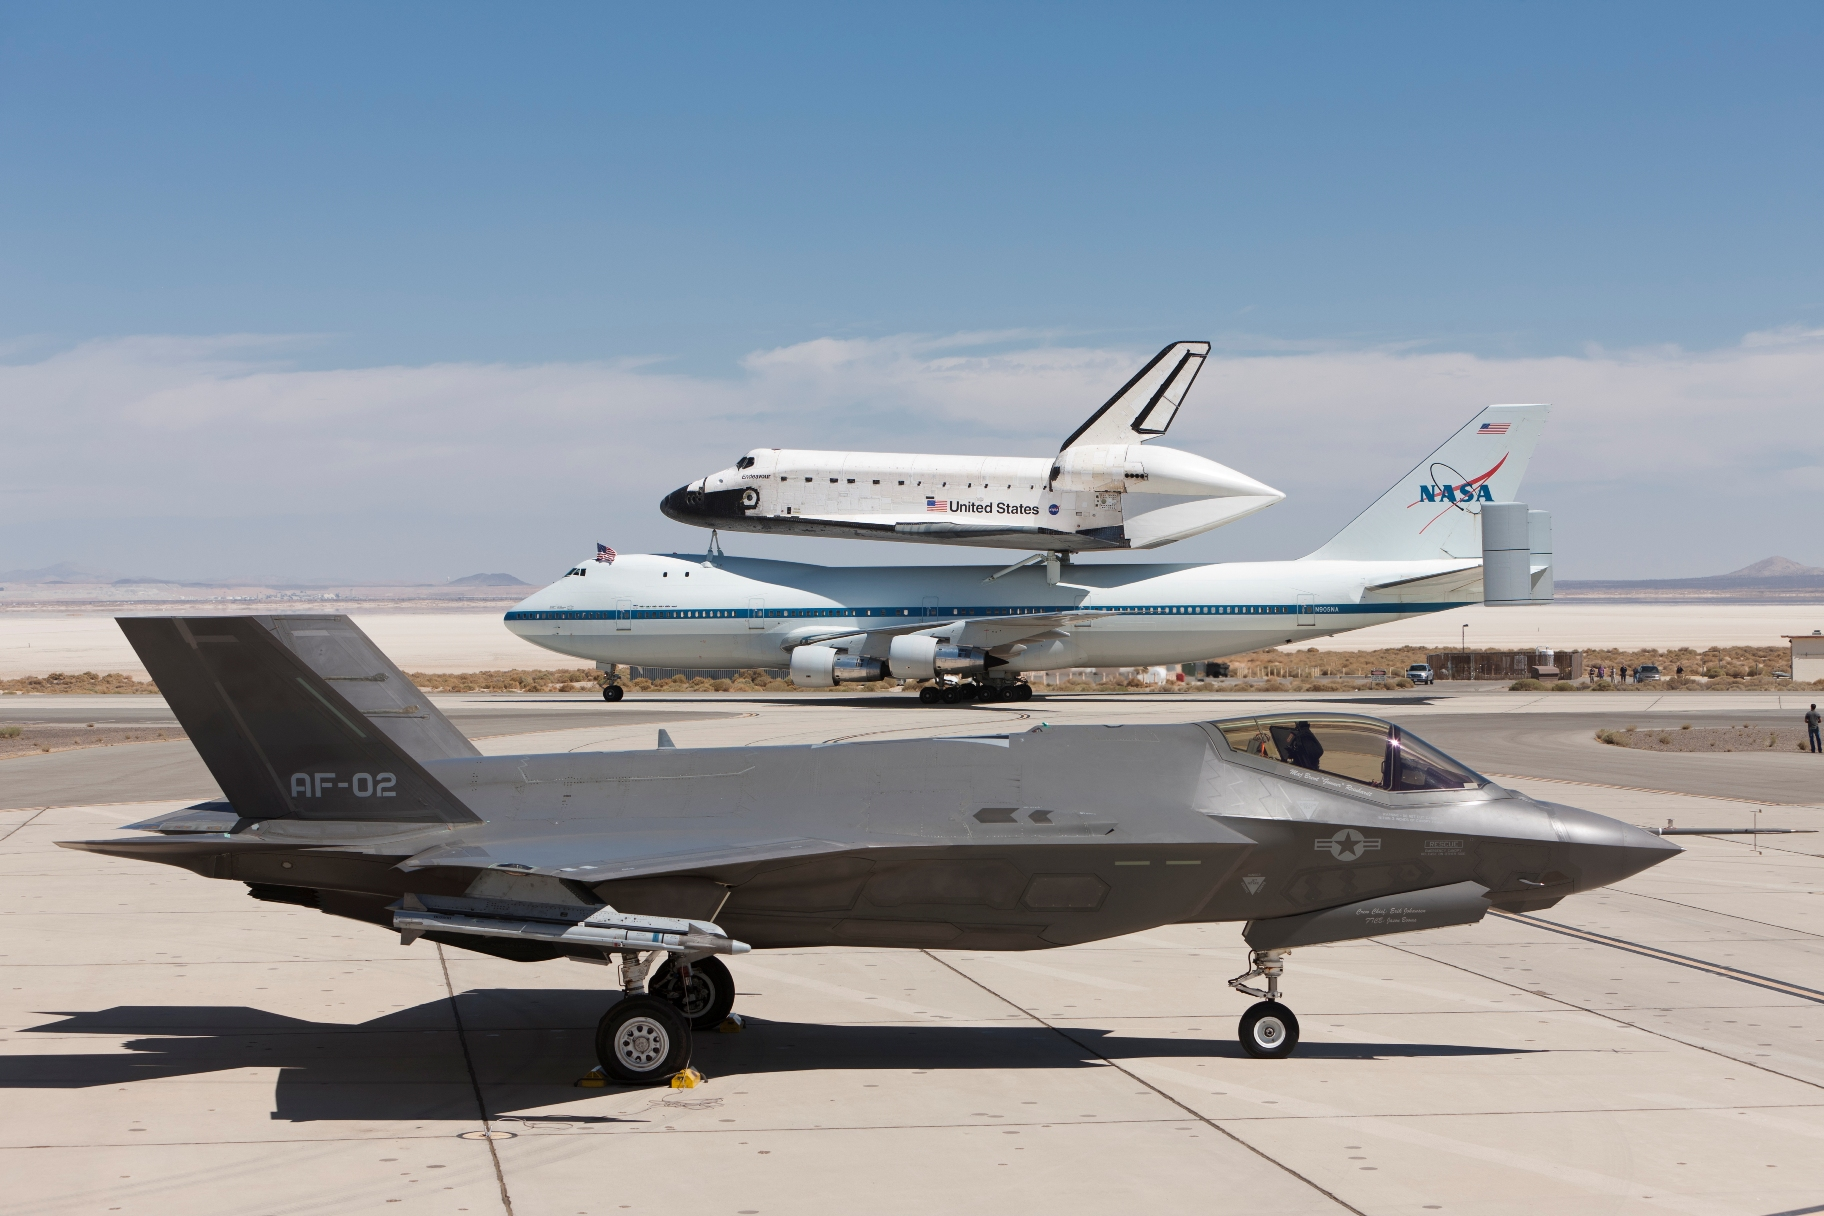 space shuttle usaf - photo #23